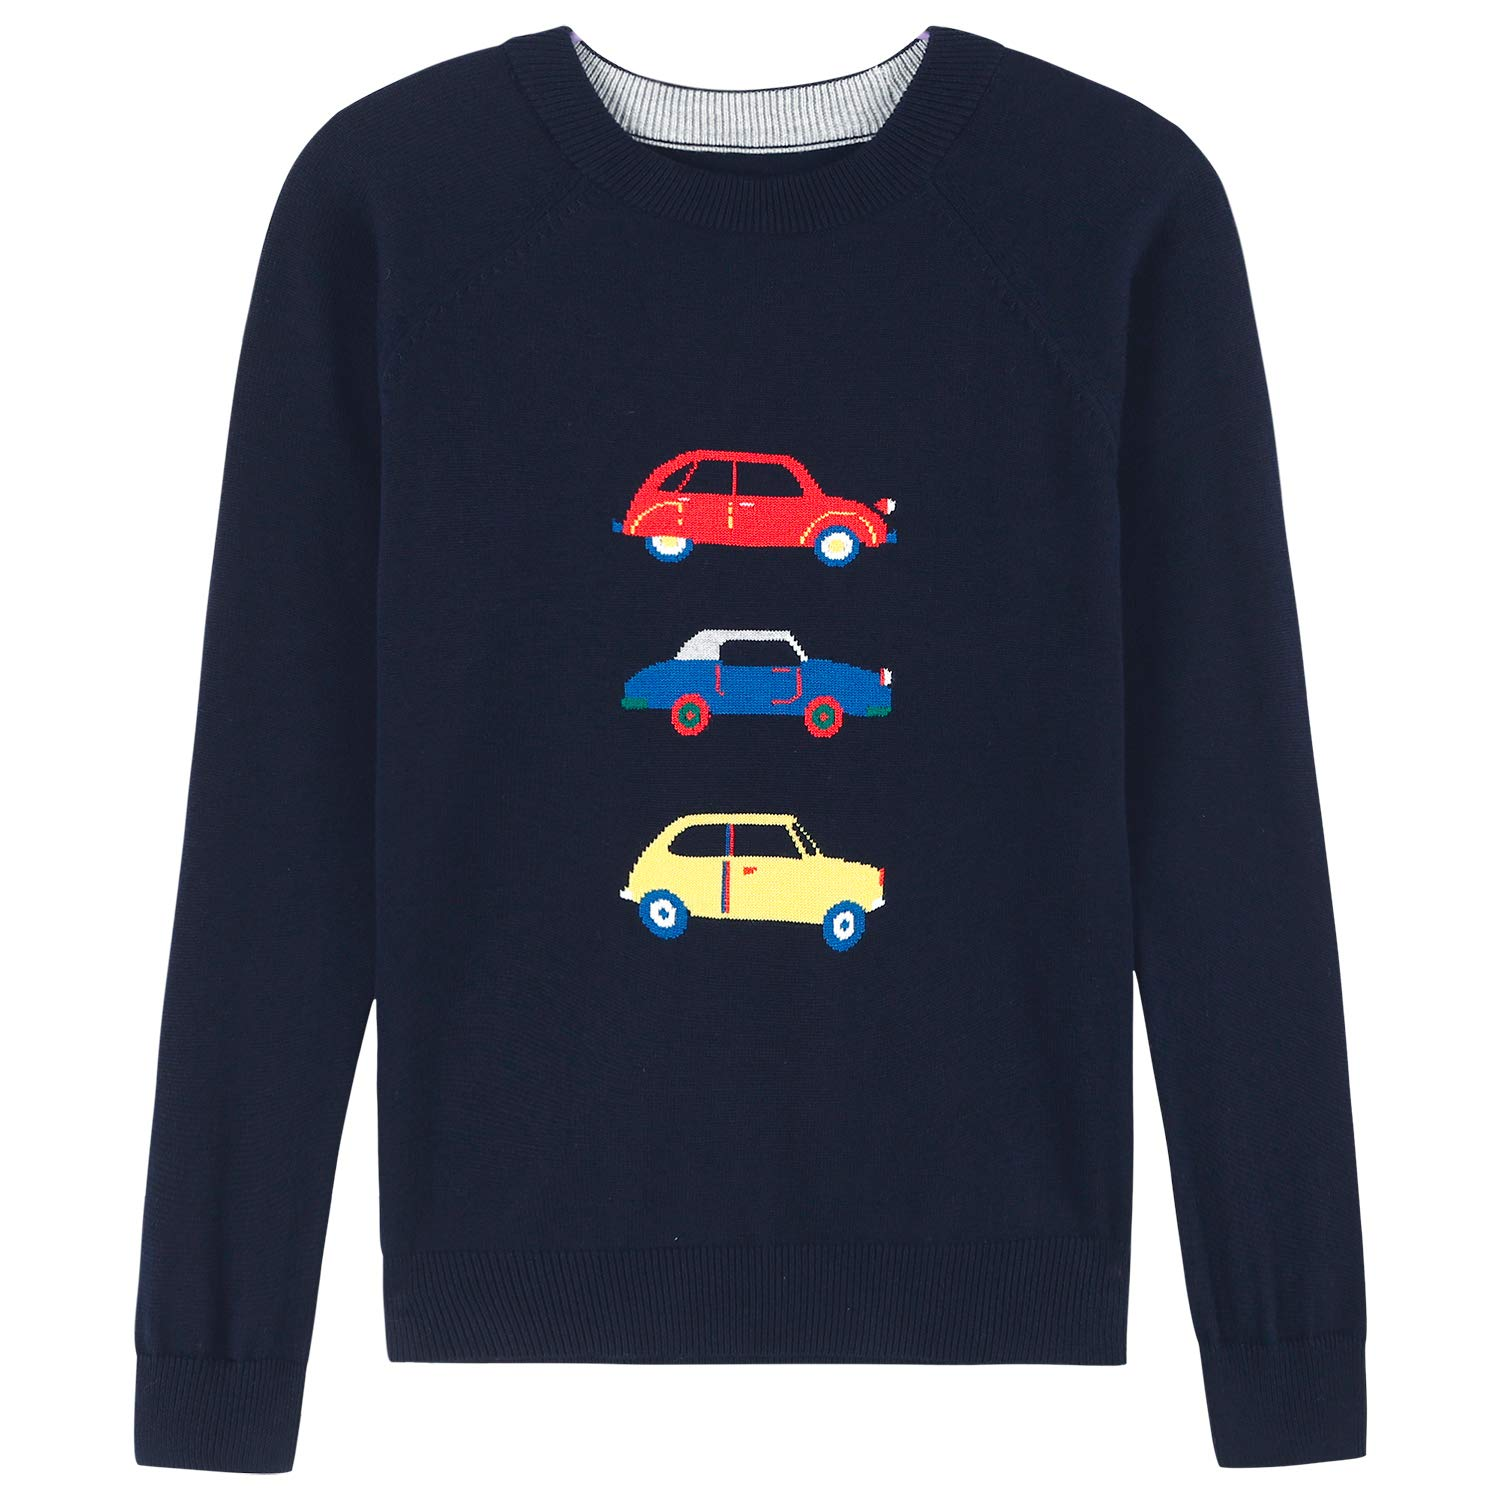 Adory Sweety Tops Sweater for Kids Baby Boy Toddler Soft &Cute Crew Neck Jacquard Knit with Colorful Cars Long Sleeve Pullover (Navy, 6Y)